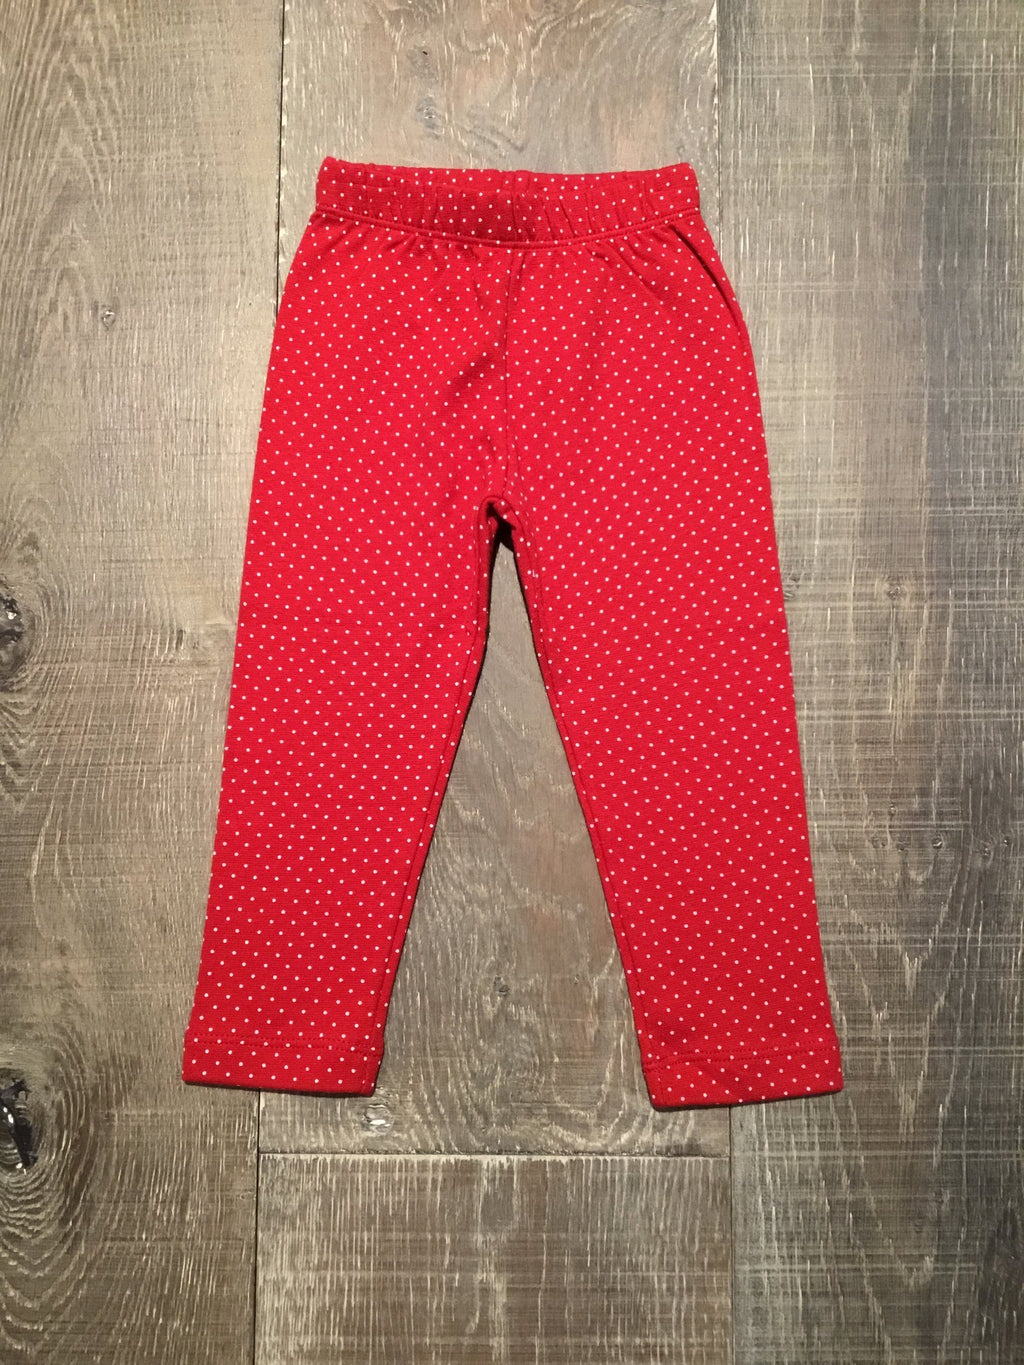 Youth Dotted Leggings by Luigi